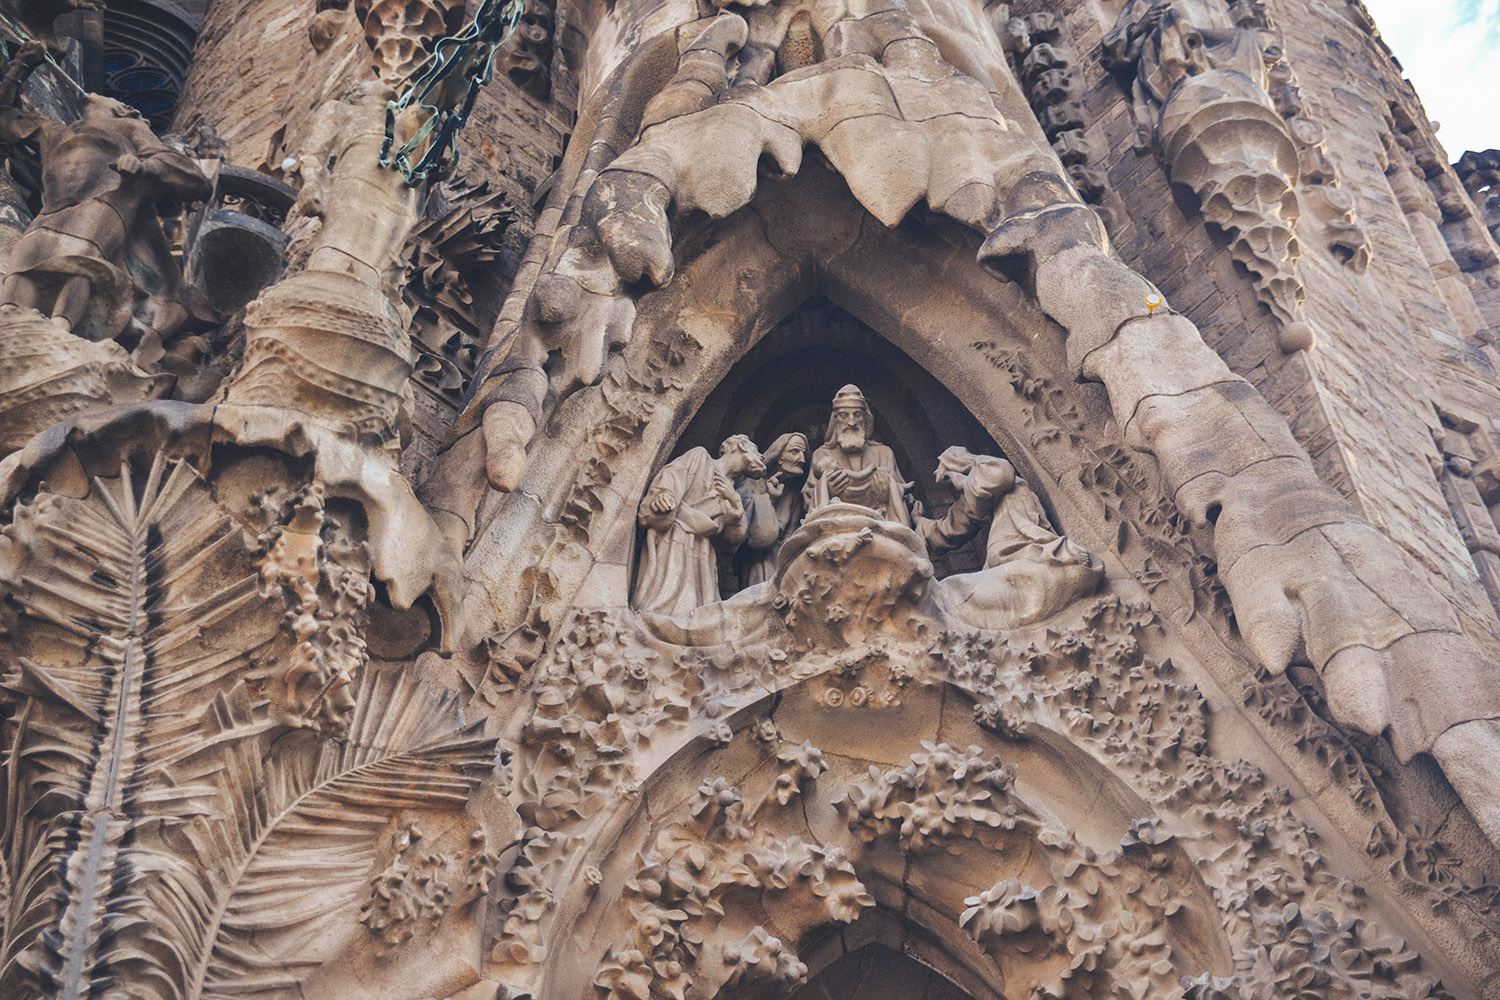 Sculptures at Sagrada Família